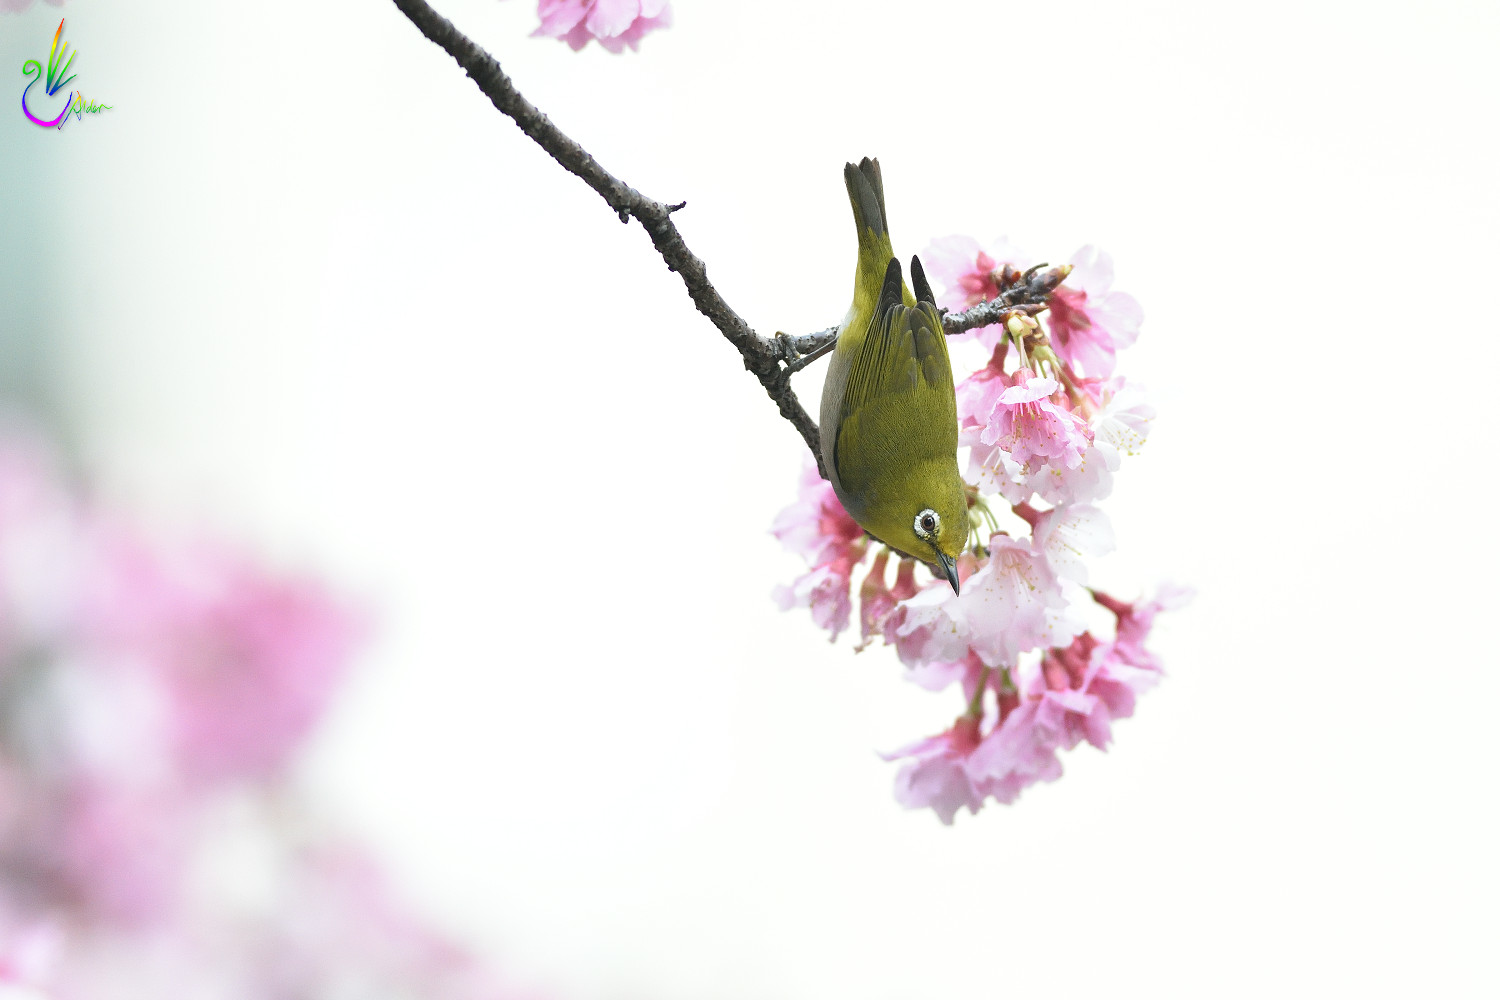 Sakura_White-eye_4904